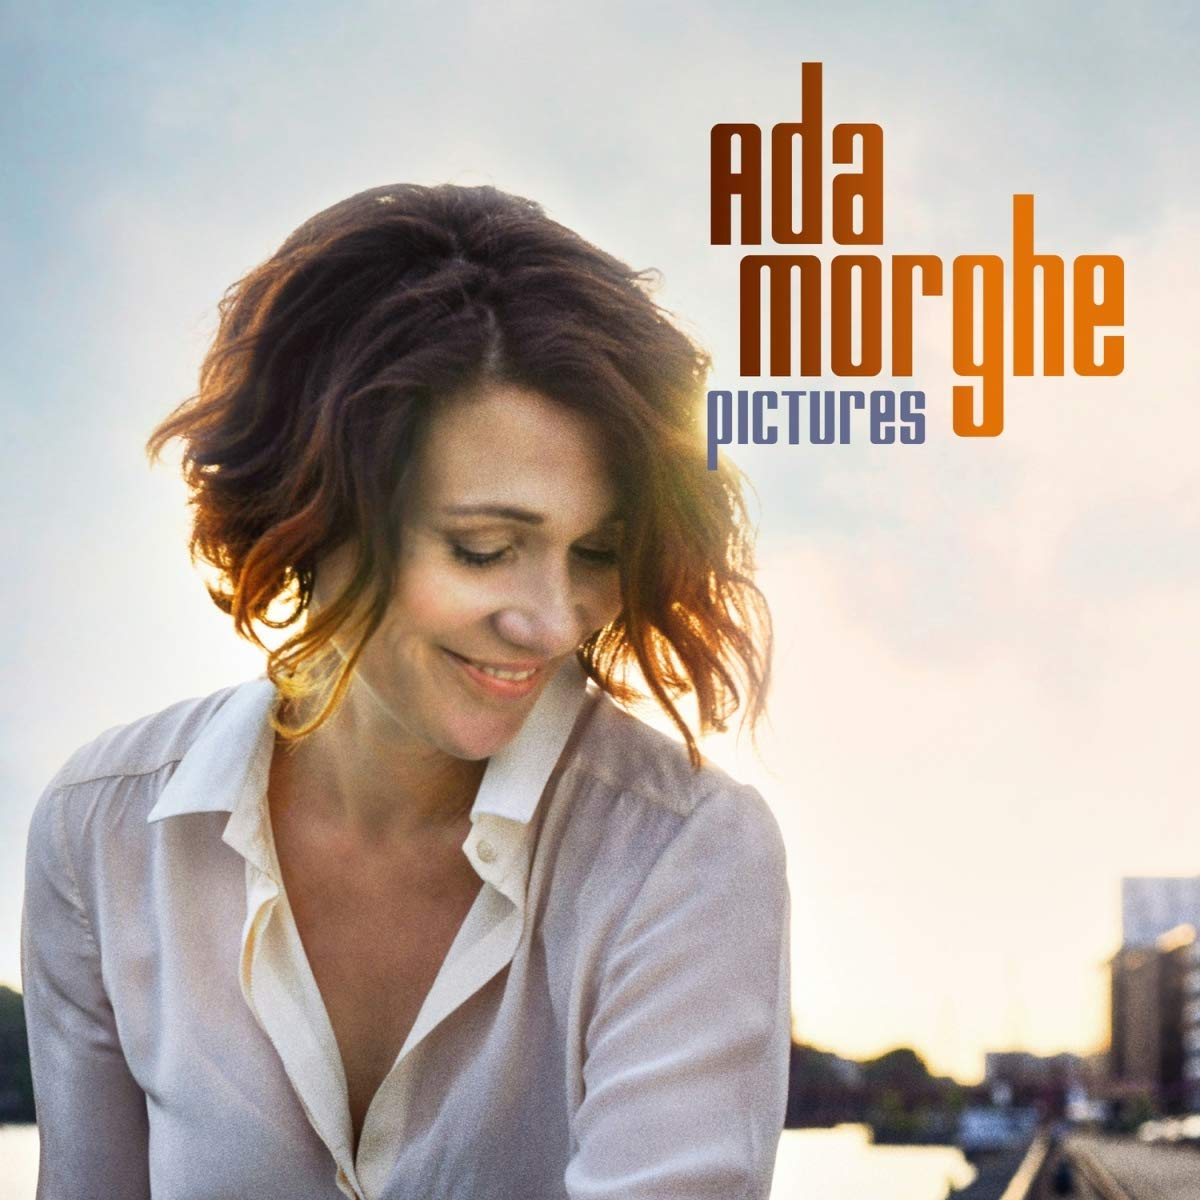 CD : Ada Morghe - Pictures (Germany - Import)